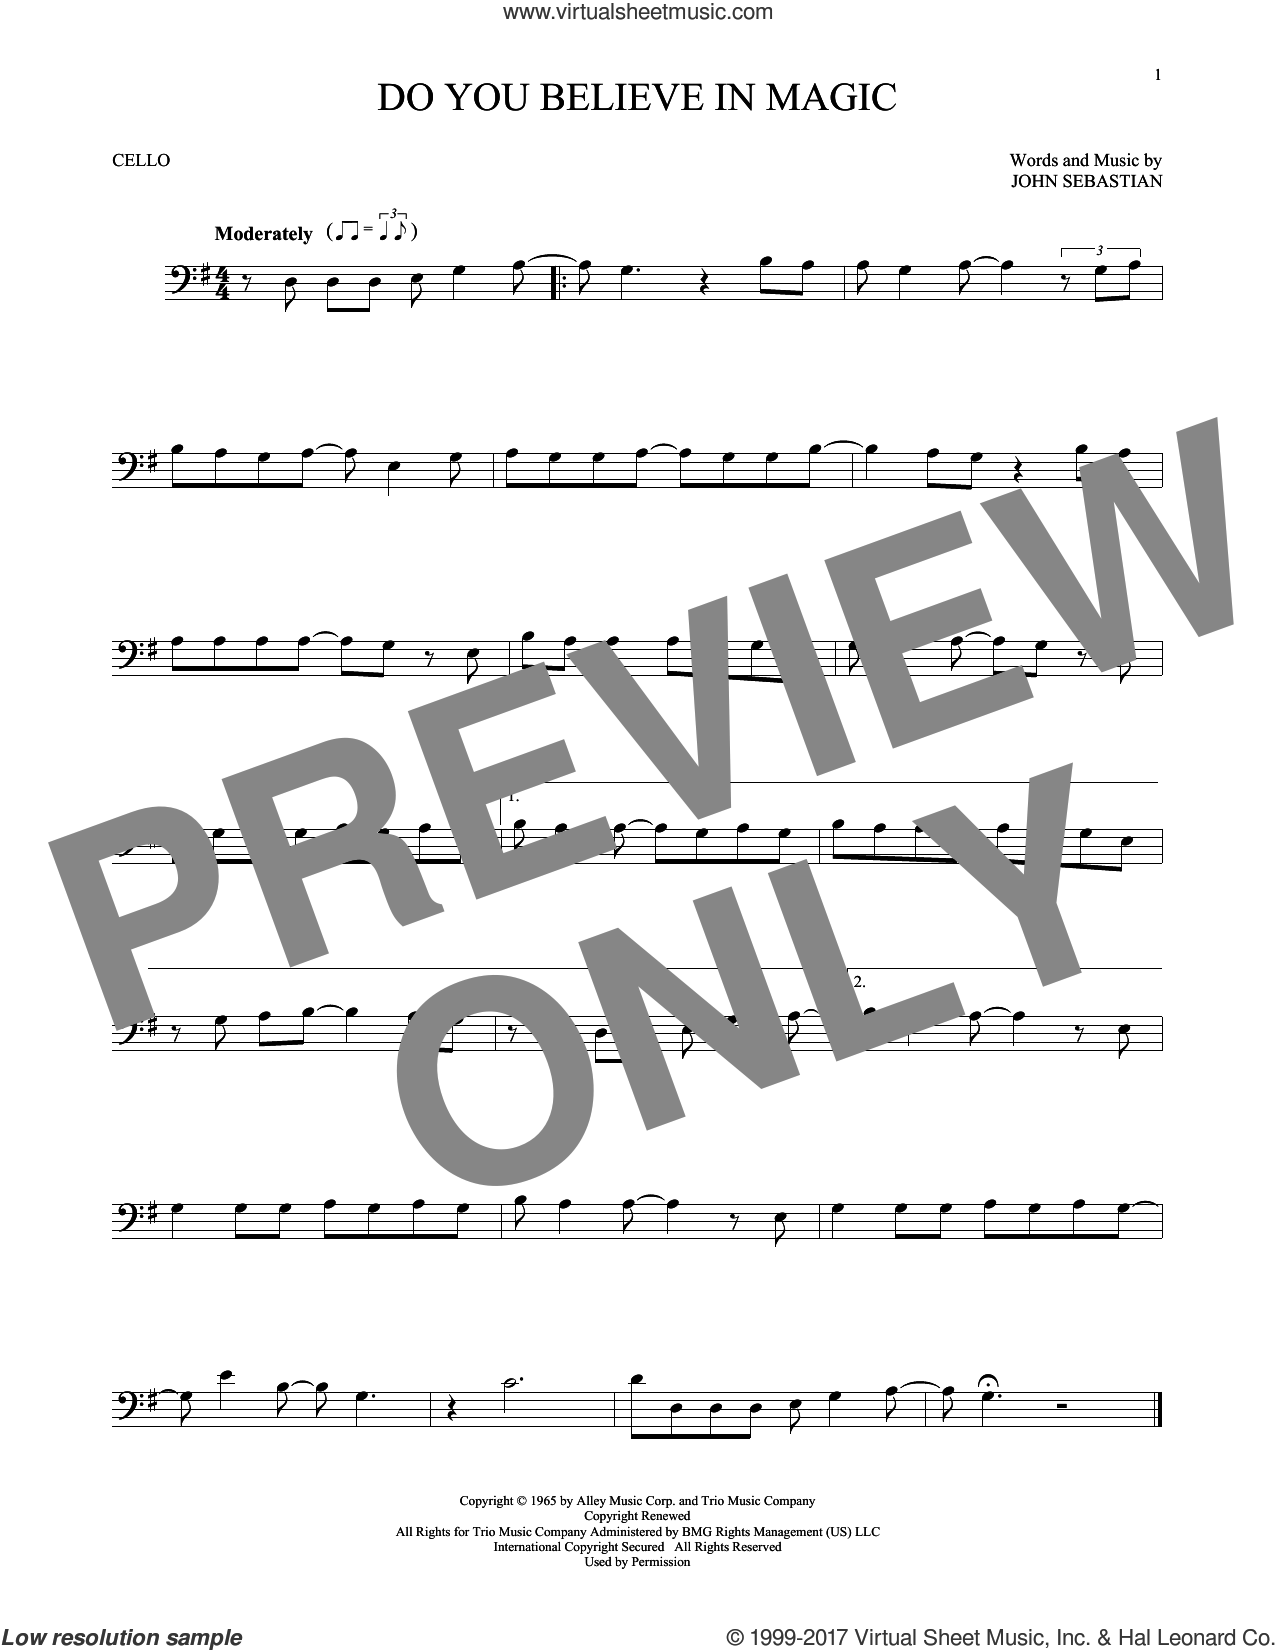 Do You Believe In Magic sheet music for cello solo by Lovin' Spoonful and John Sebastian, intermediate skill level